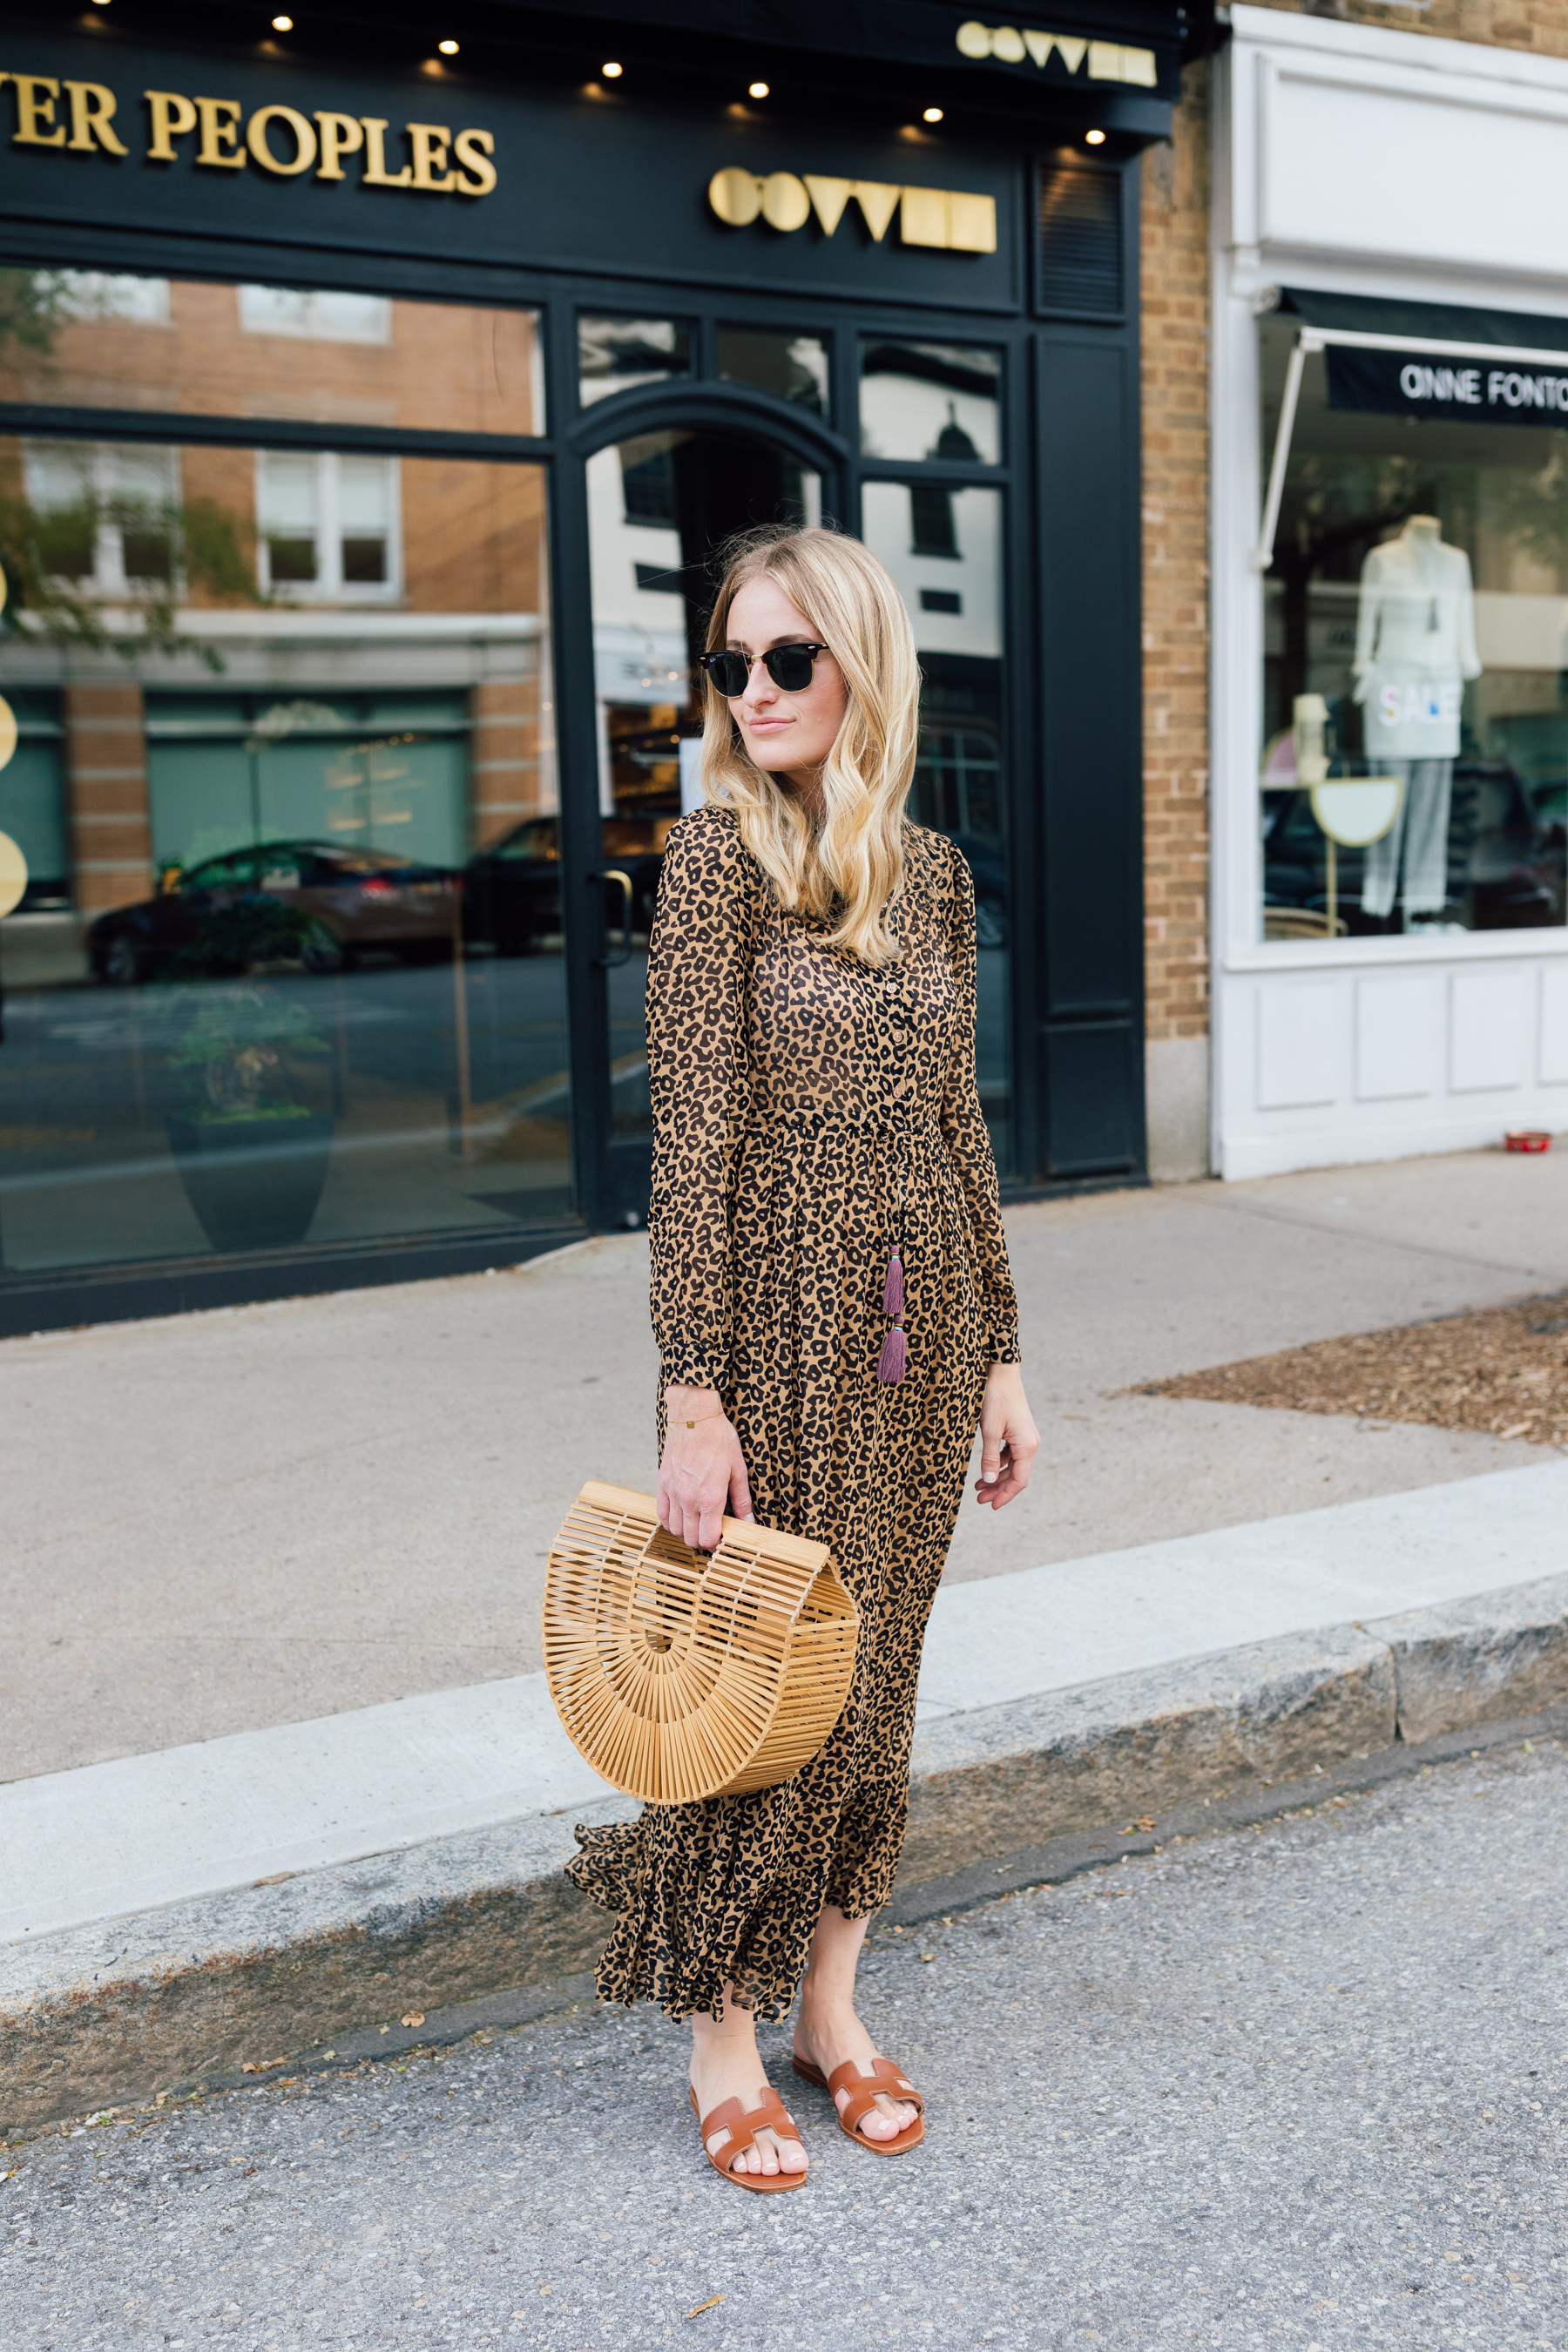 How to style a leopard maxi dress // stephanie trotta // the girl guide